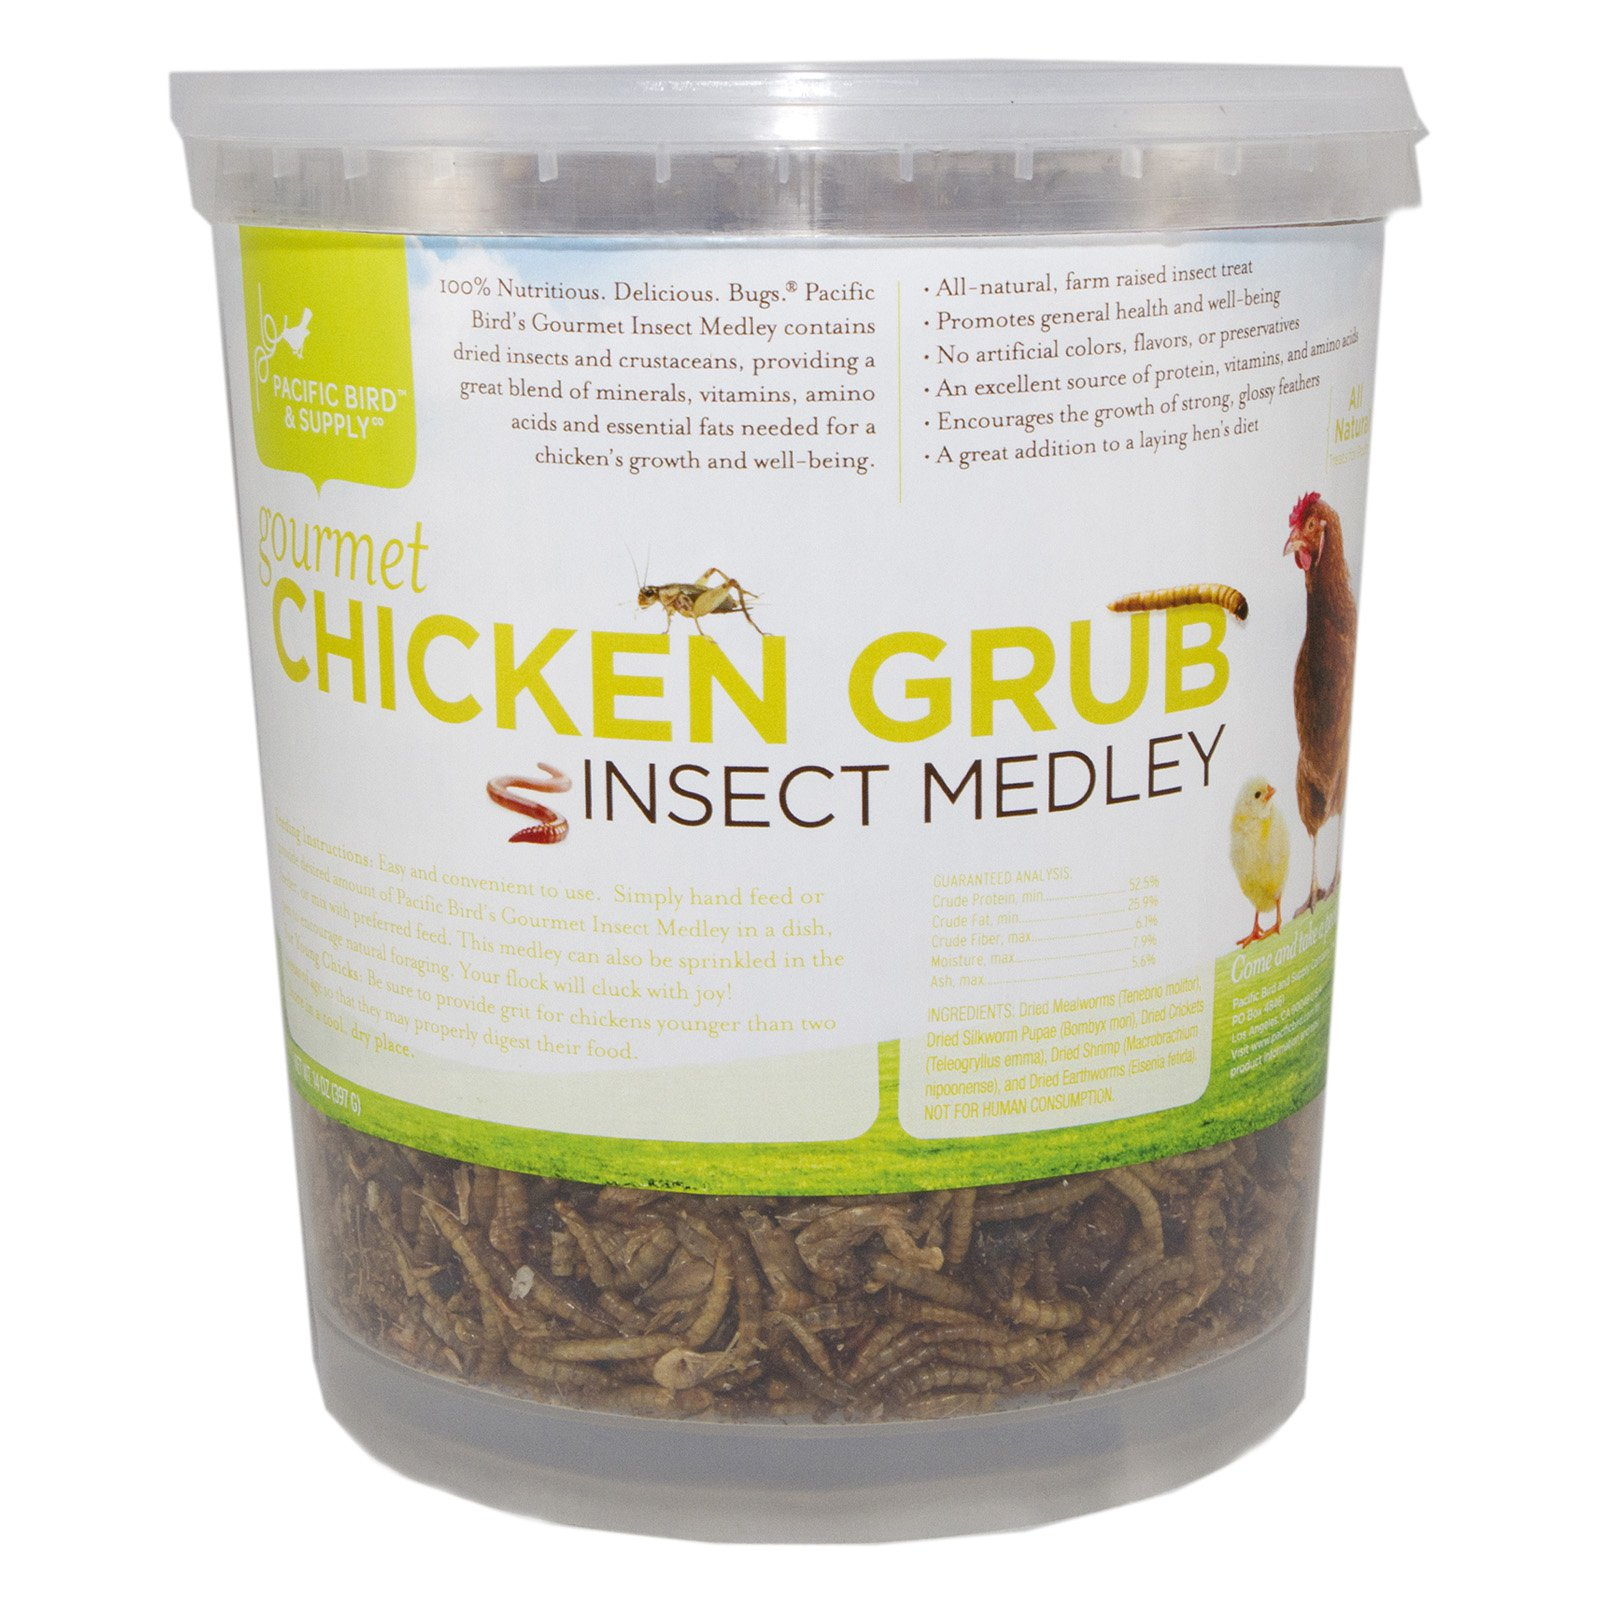 Pacific Bird & Supply PB-0064 14 oz Gourmet Chicken Grub Insect